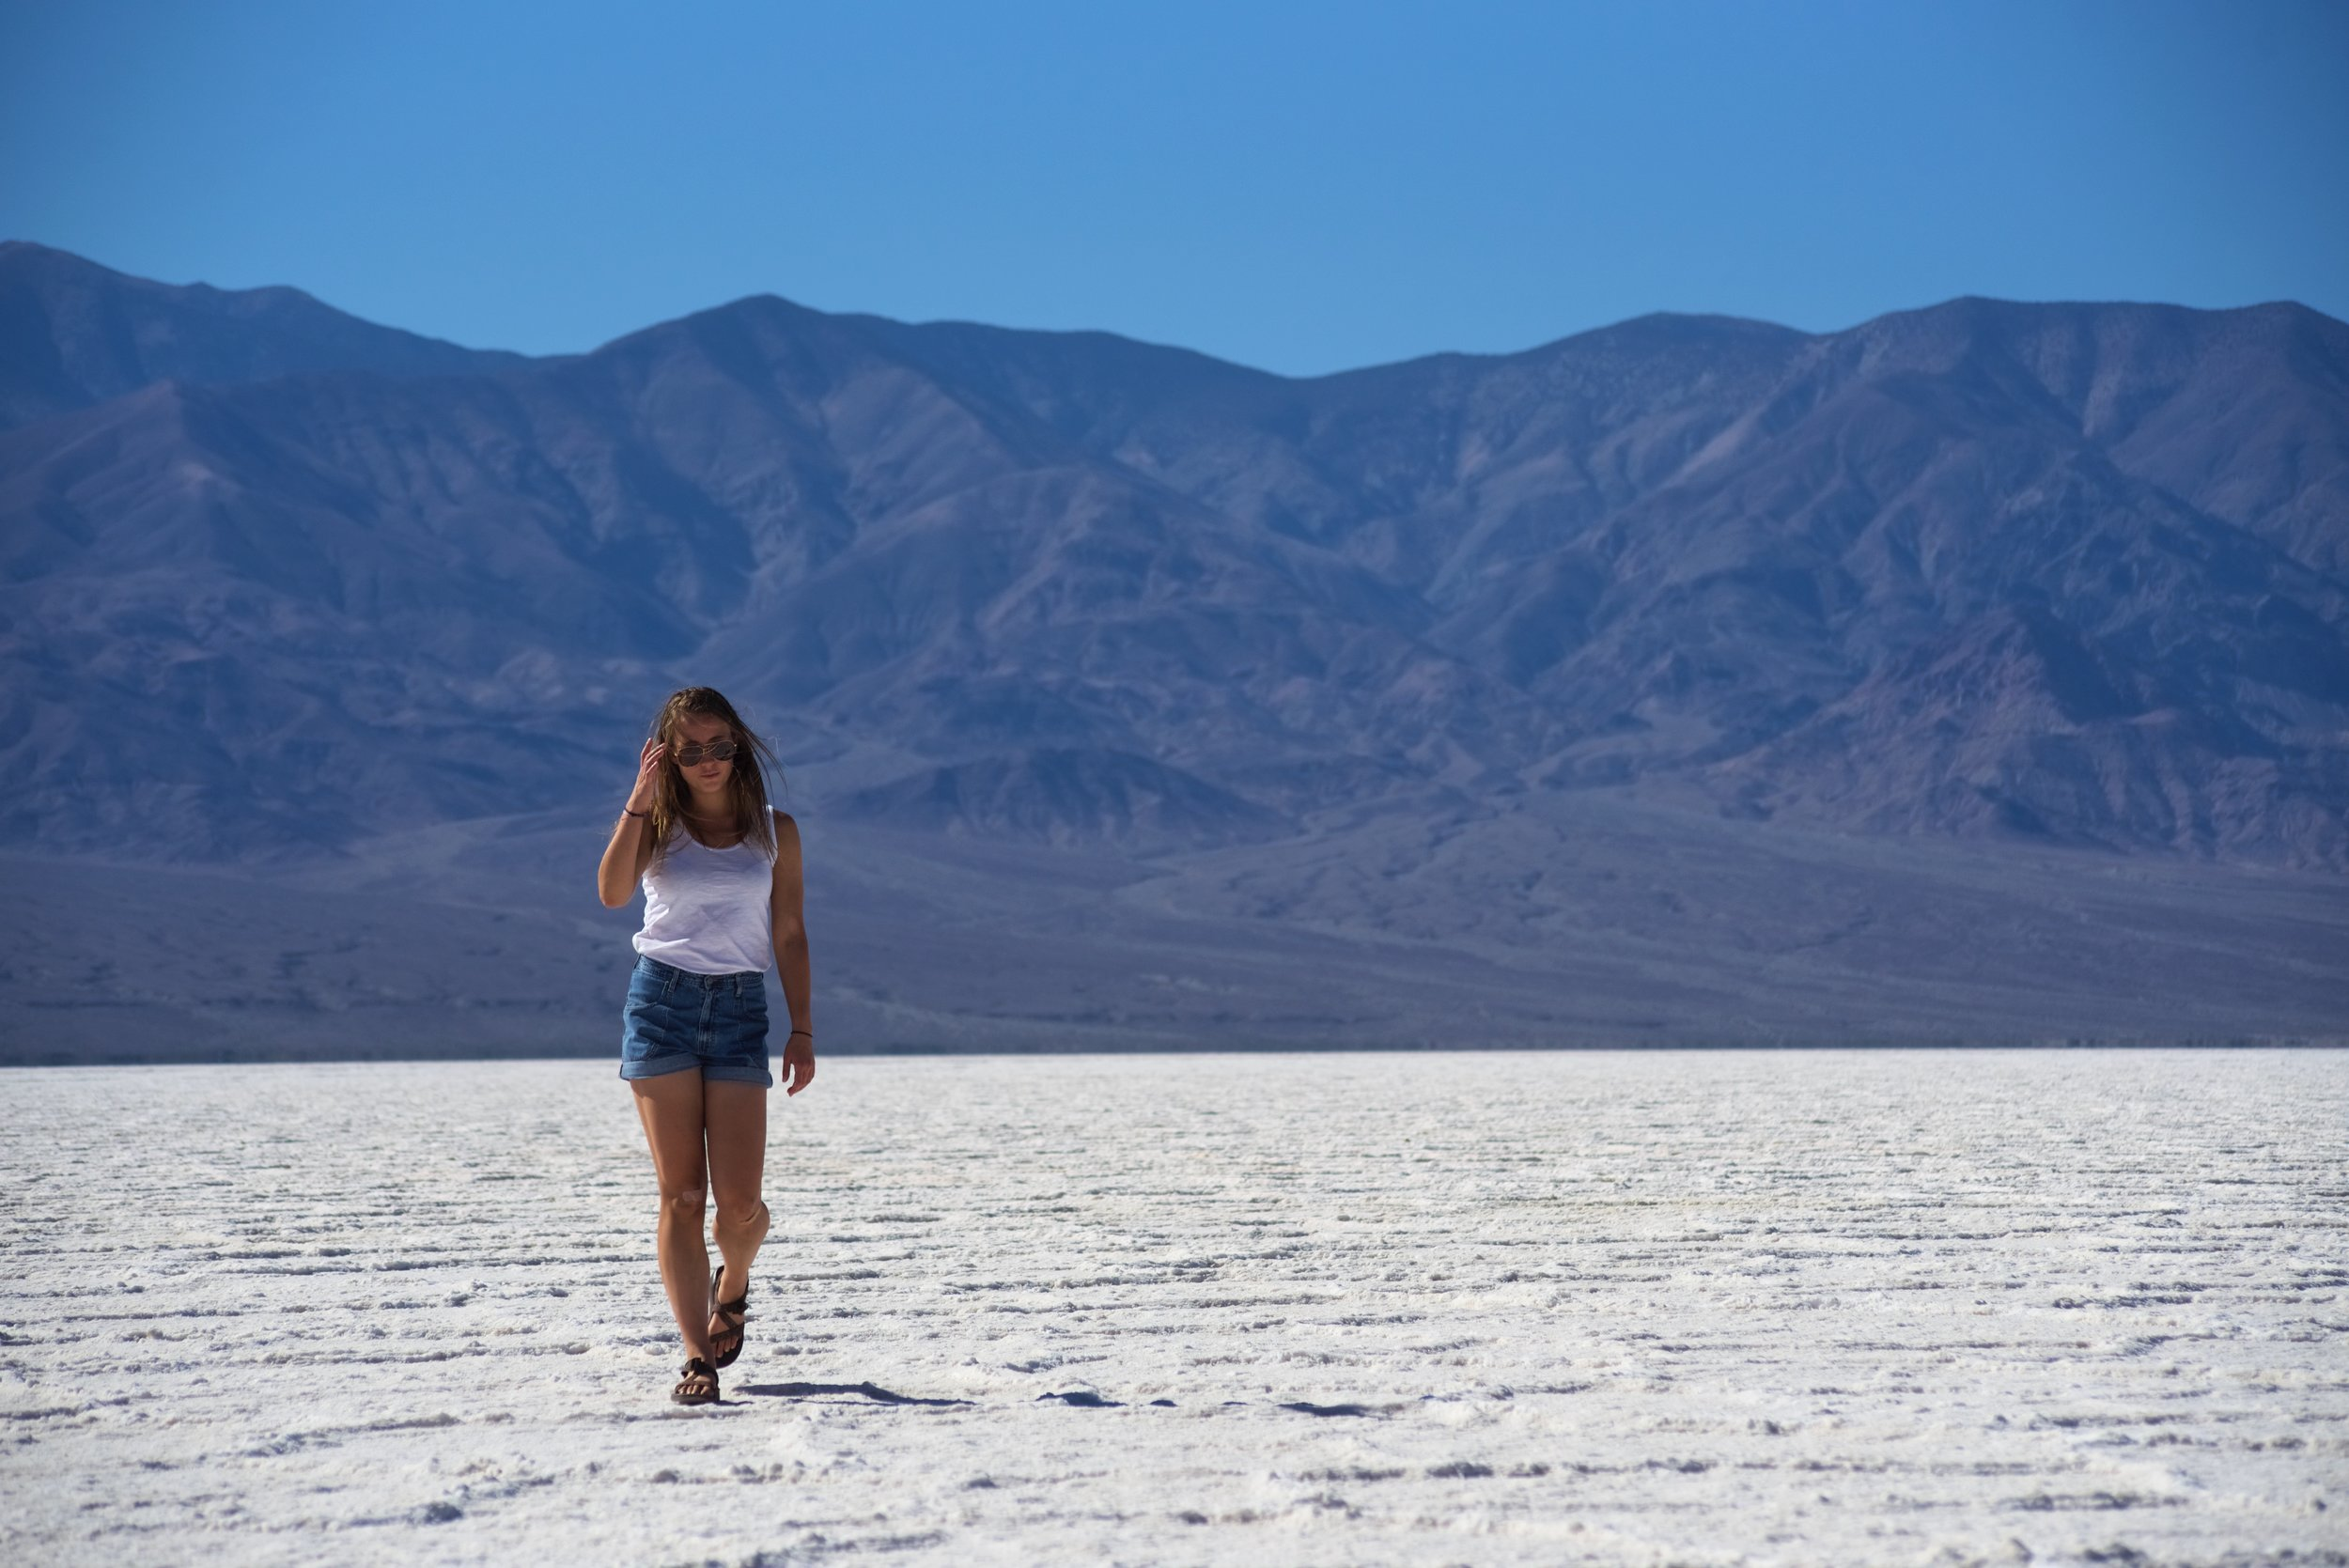 Walking on the Badwater Basin salt pan is actually pretty challenging because of the extreme heat, even though it's perfectly flat.